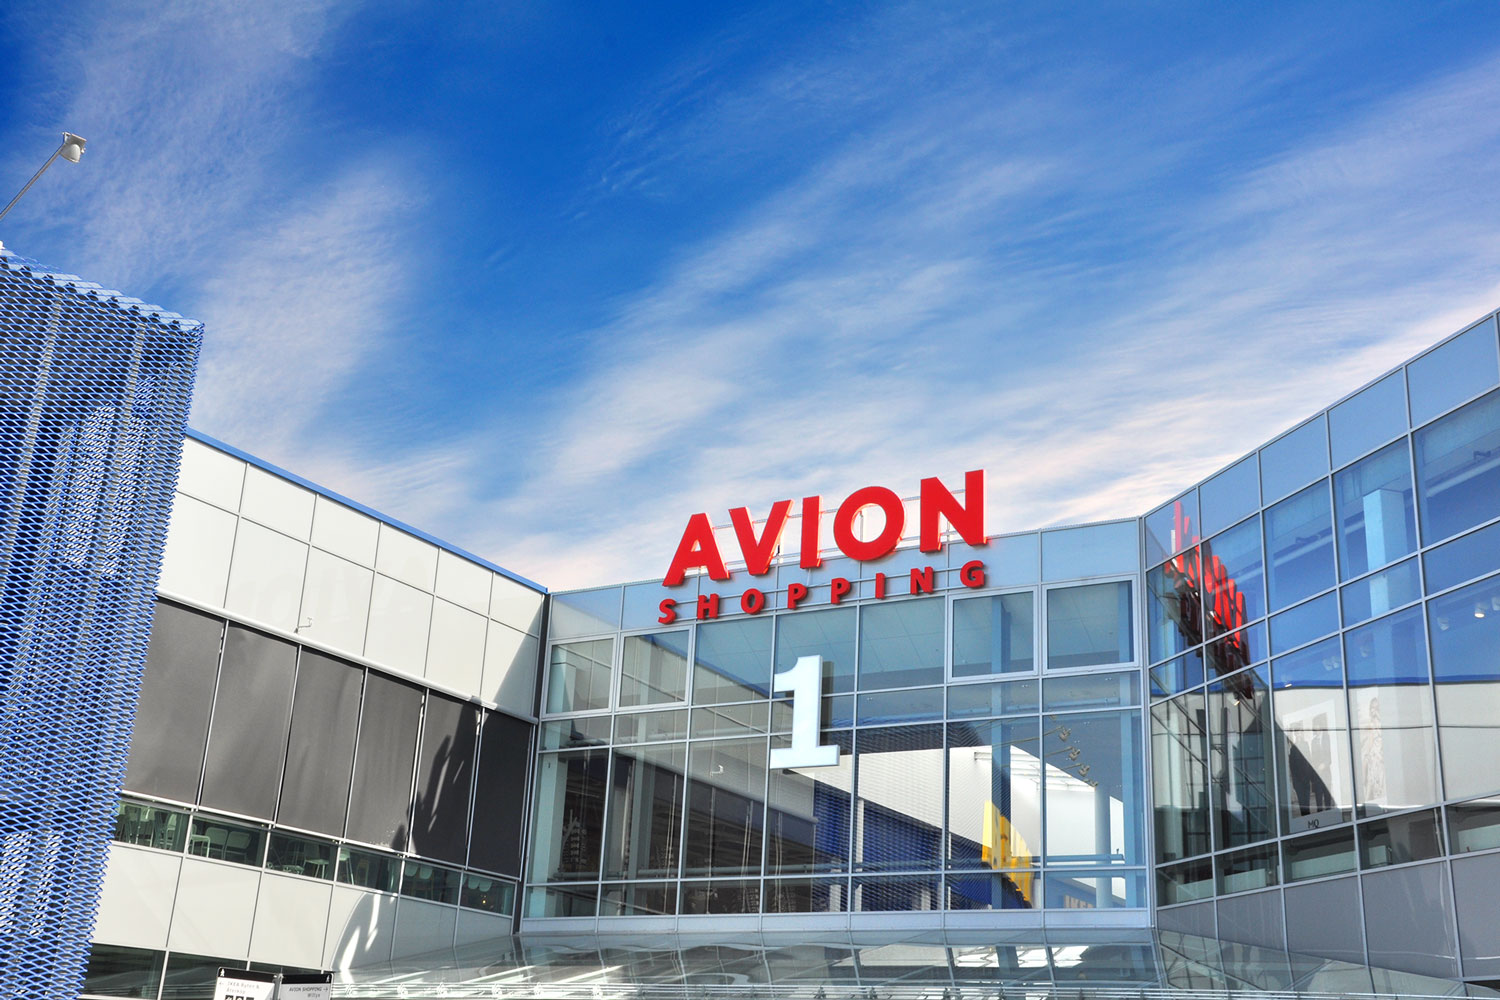 avion shopping umeå öppettider